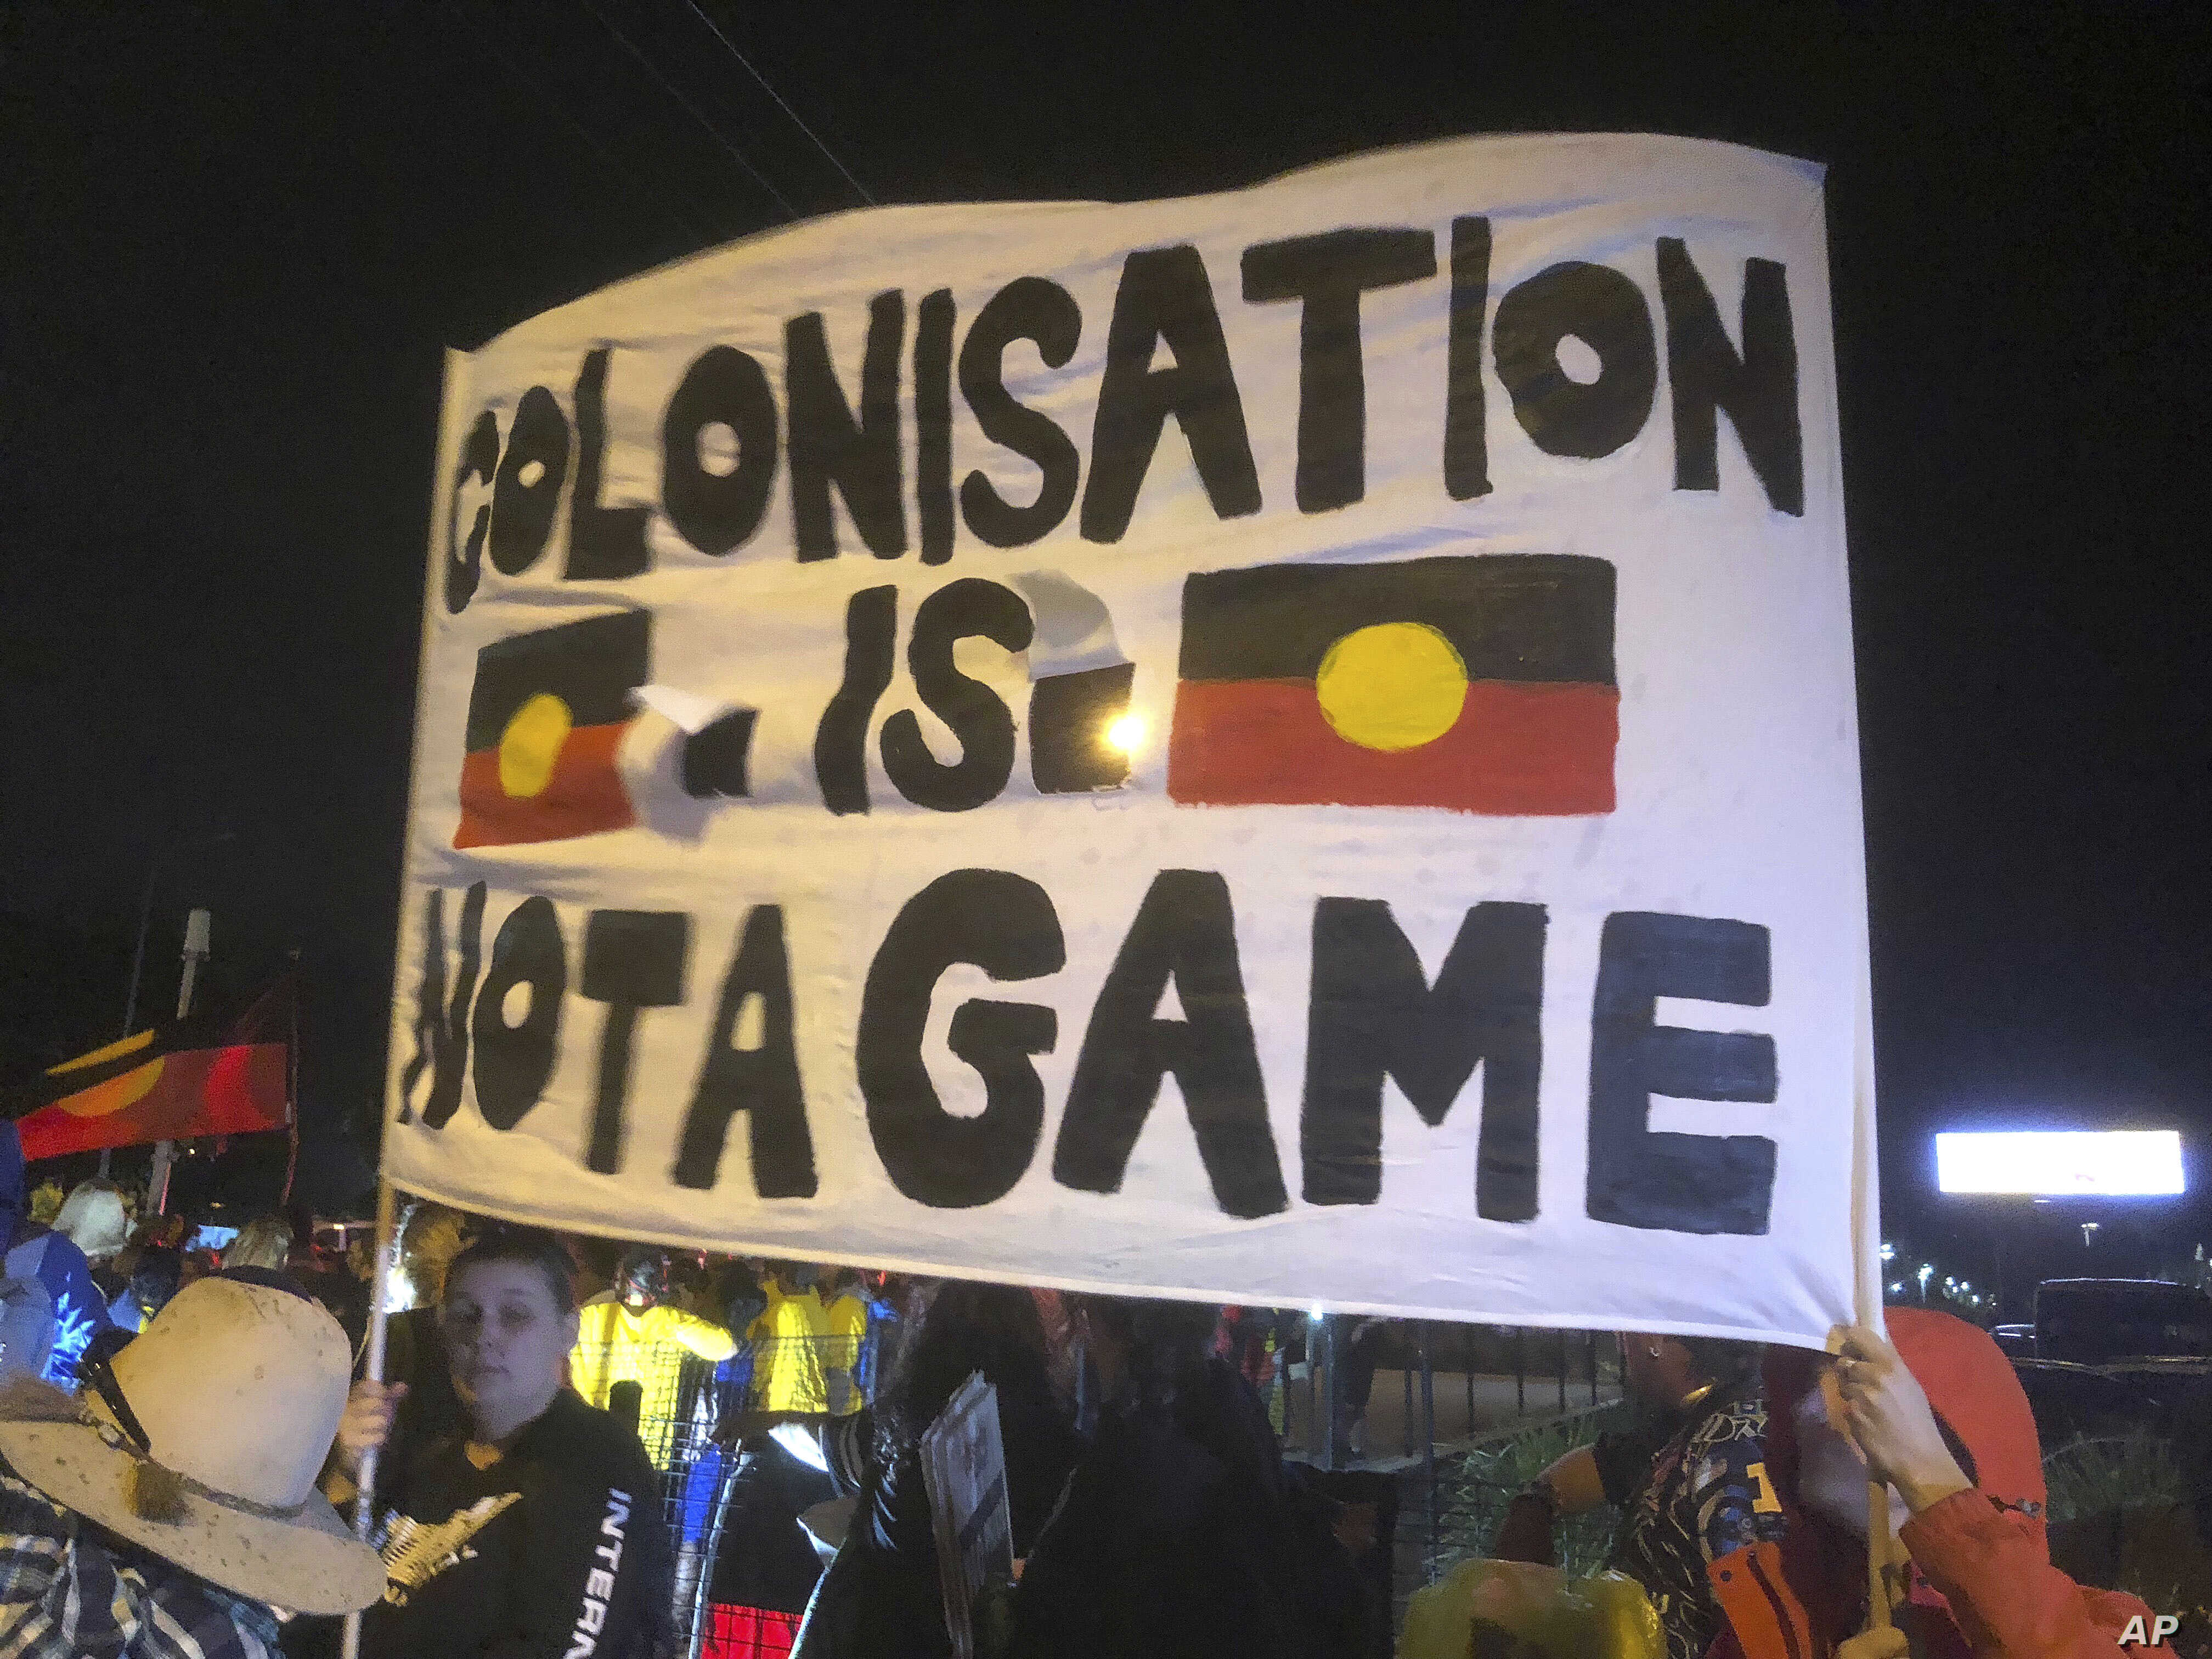 A small group of indigenous protesters blocked a Gold Coast road, bringing a temporary halt to the Queen's baton relay before the opening ceremony for the 2018 Commonwealth Games at Carrara Stadium on the Gold Coast, Australia, April 4, 2018.